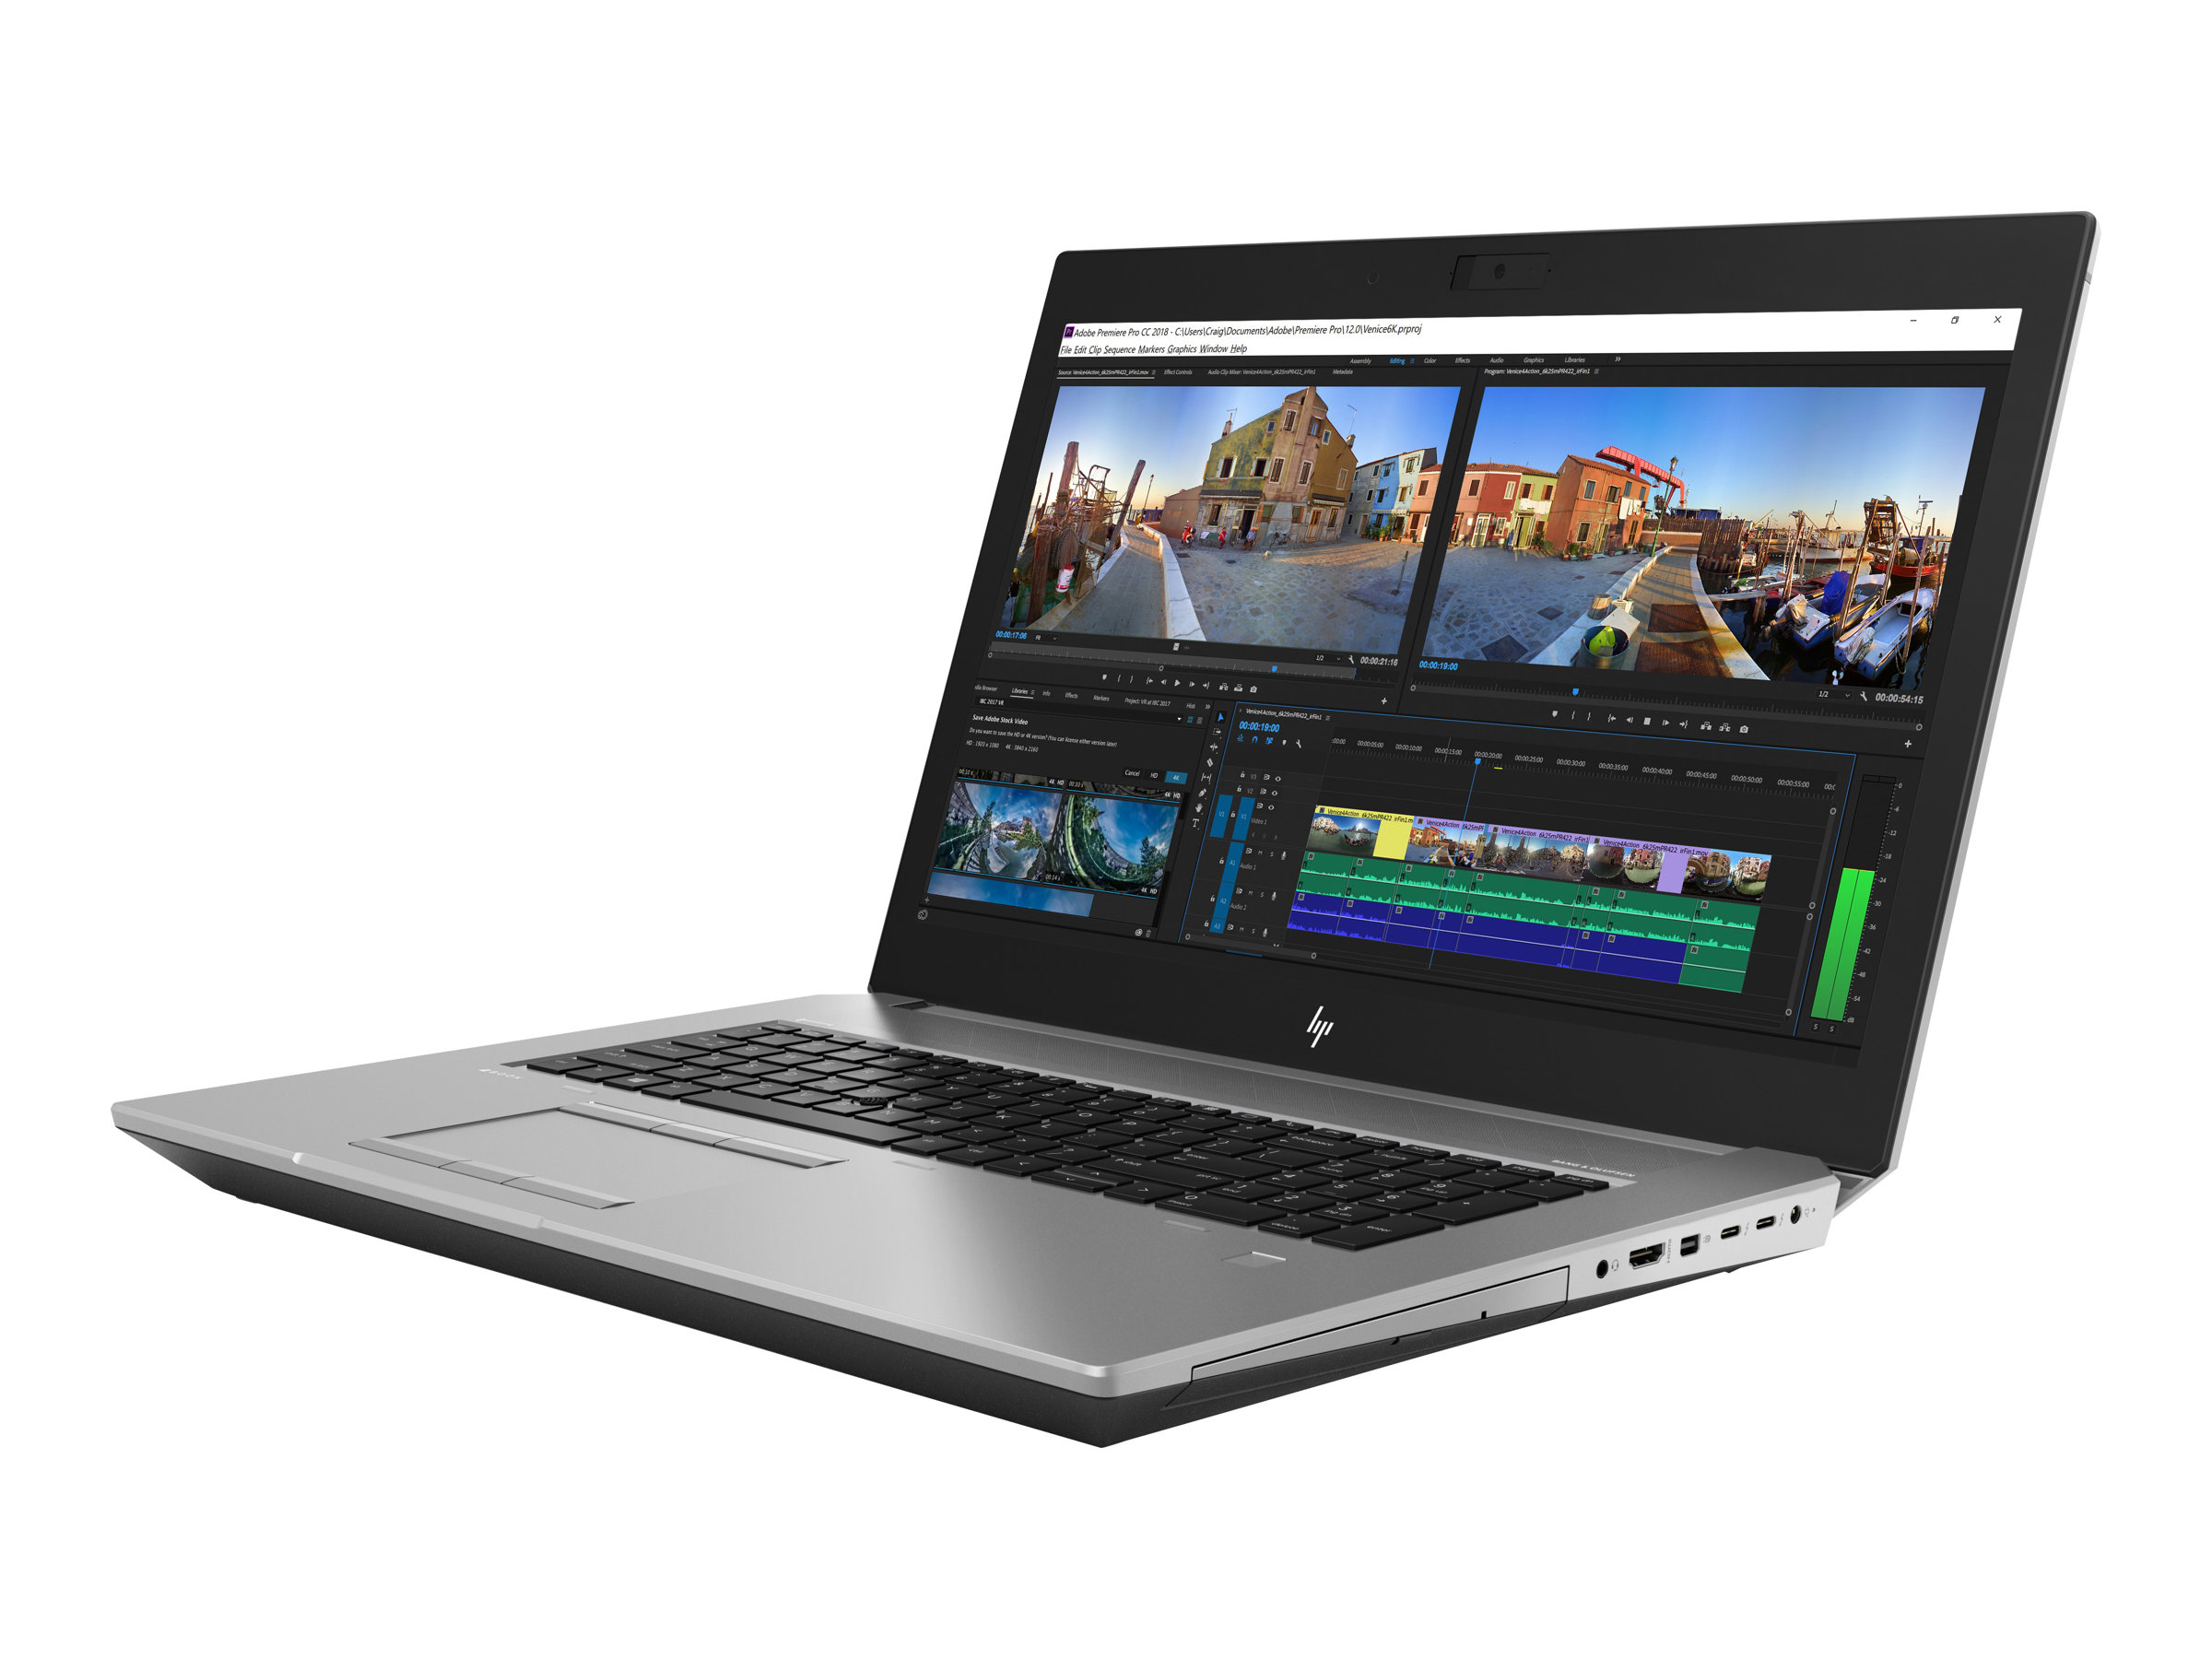 Hp zbook 17 g5 mobile workstation core i7 8750h 2 2 ghz win 10 pro 64 bit 16 gb ram 512 gb ssd nvme blu ray writer 10686566 4qh65ea abd